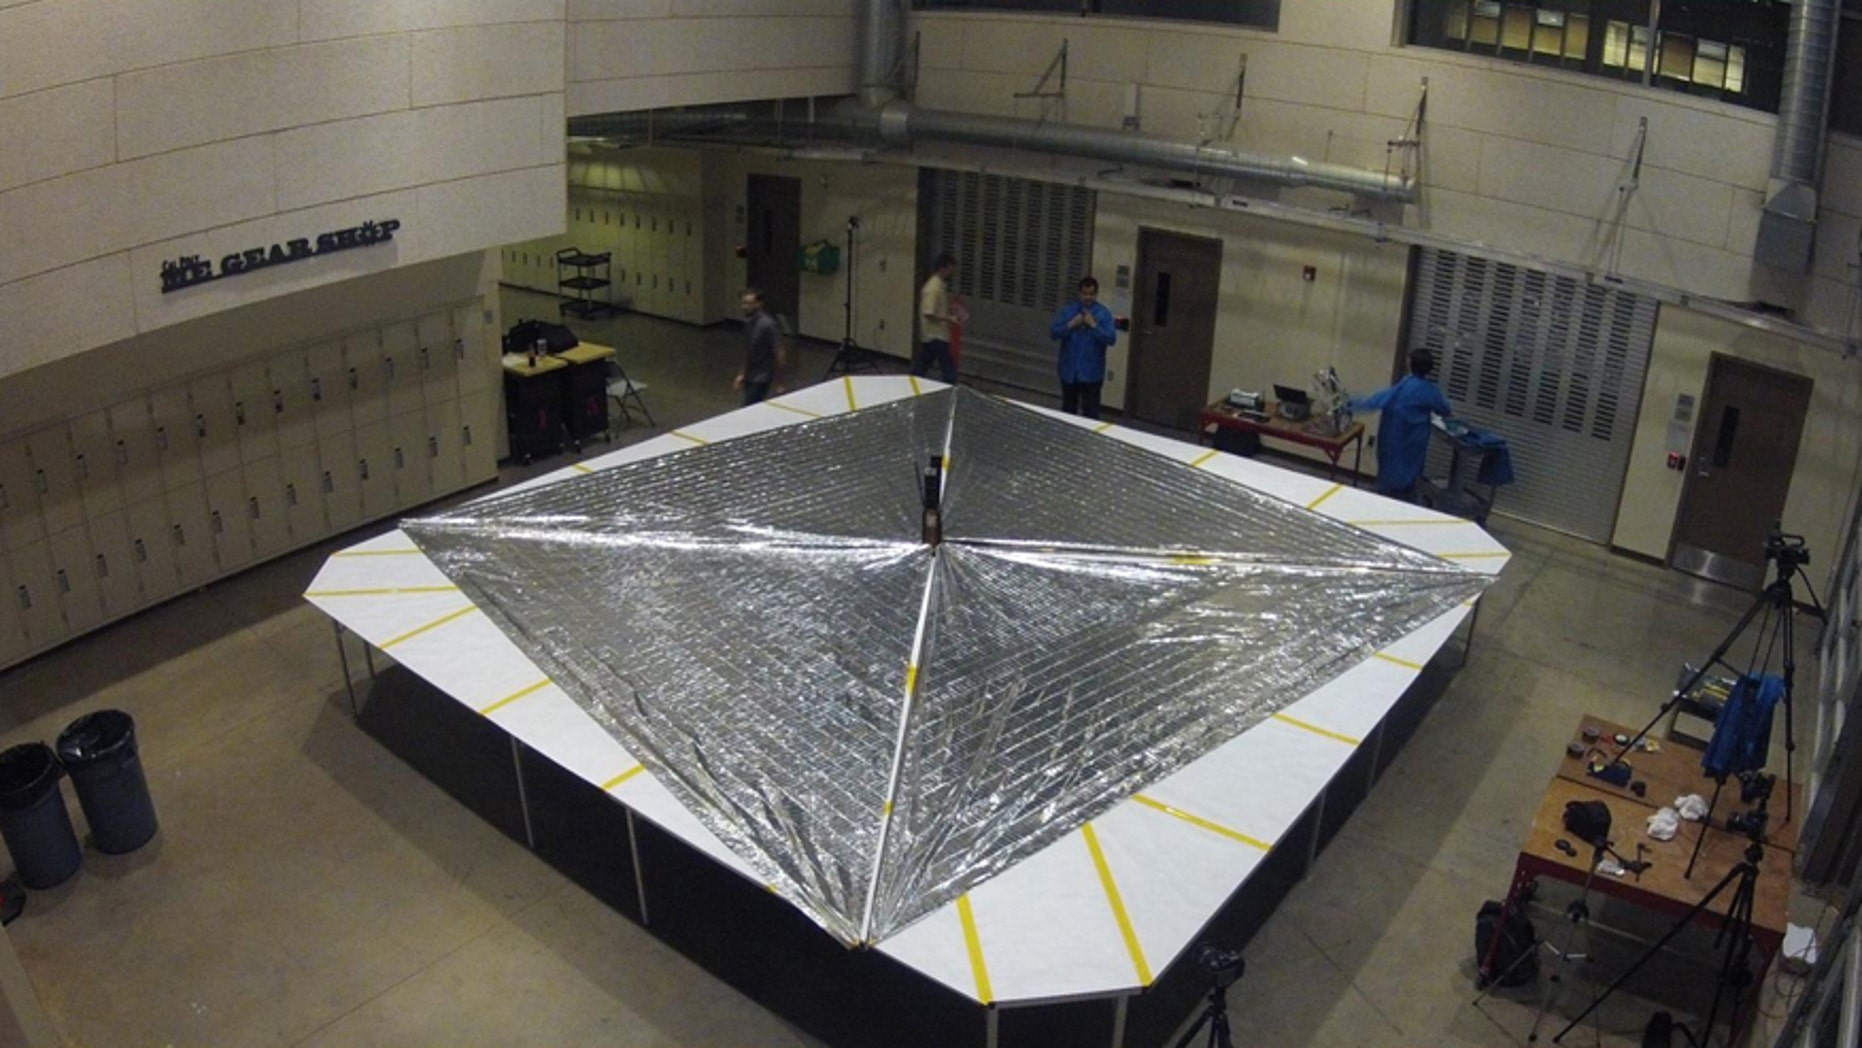 The Planetary Society's LightSail during its day-in-the-life test.